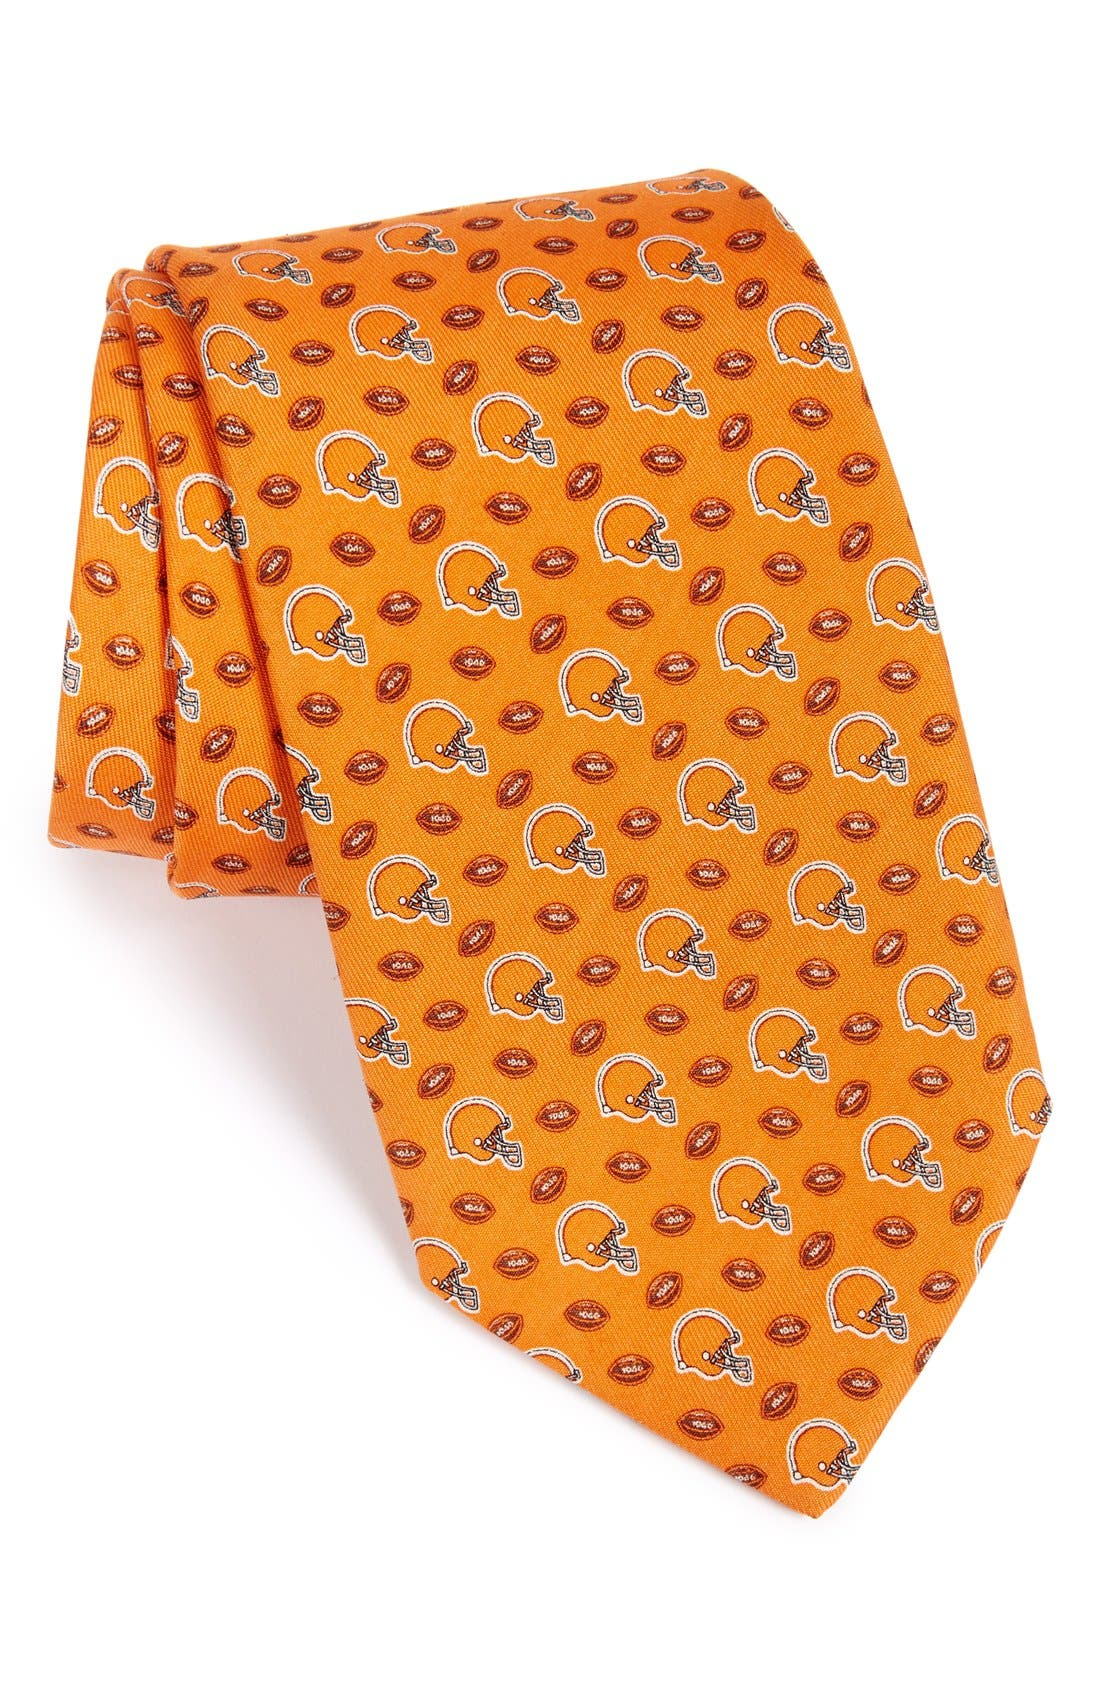 VINEYARD VINES 'Cleveland Browns - NFL' Woven Silk